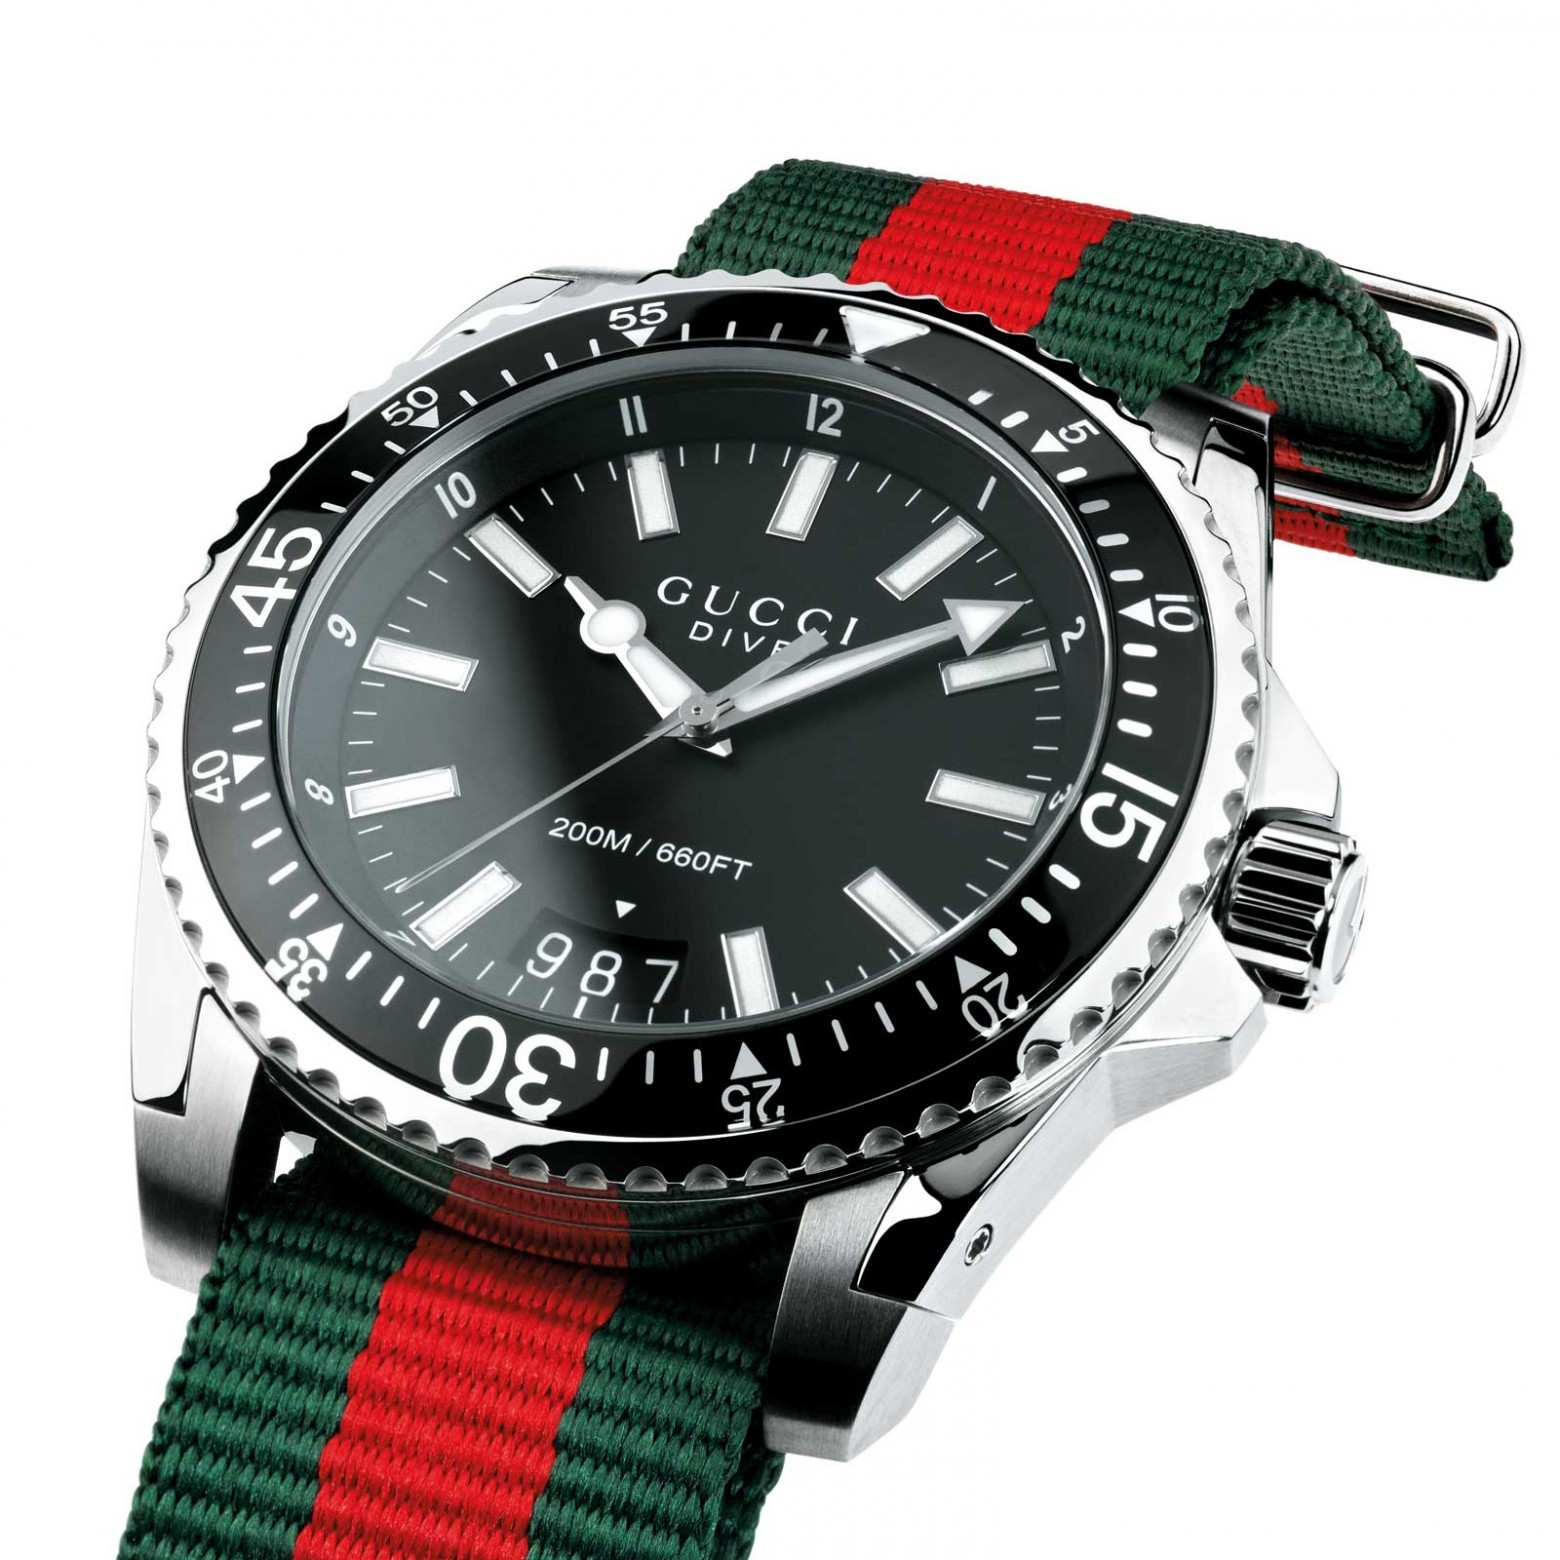 2582c1e9e7d Replica GUCCI Dive Watch Releases – Breitling Replica Watches Online ...